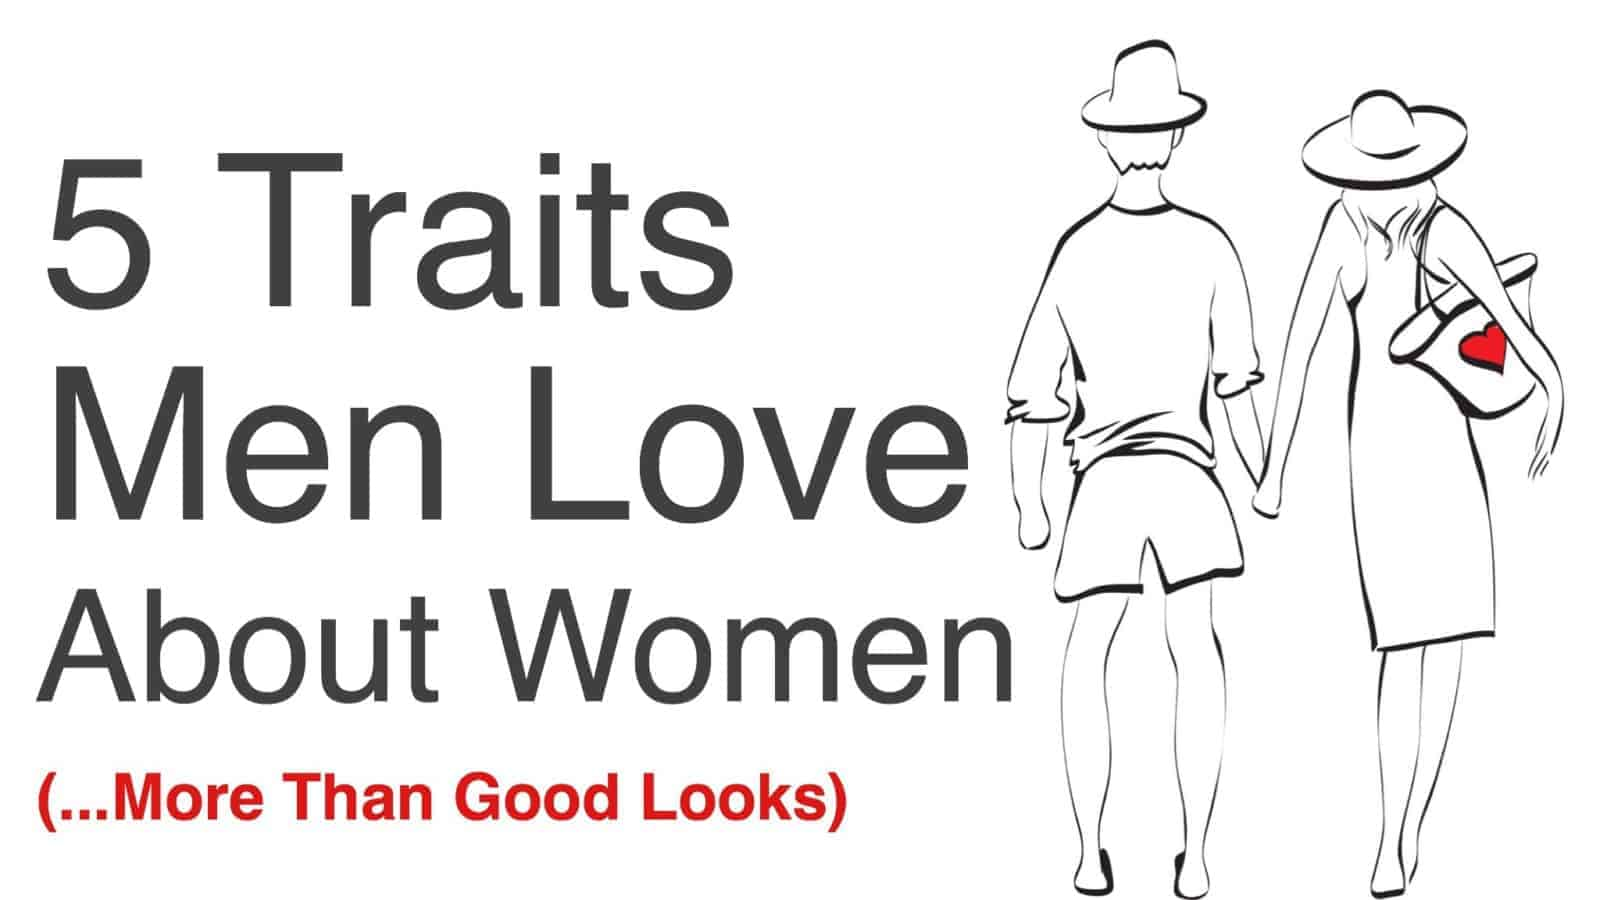 5 Traits Men Love About Women (More Than Good Looks)